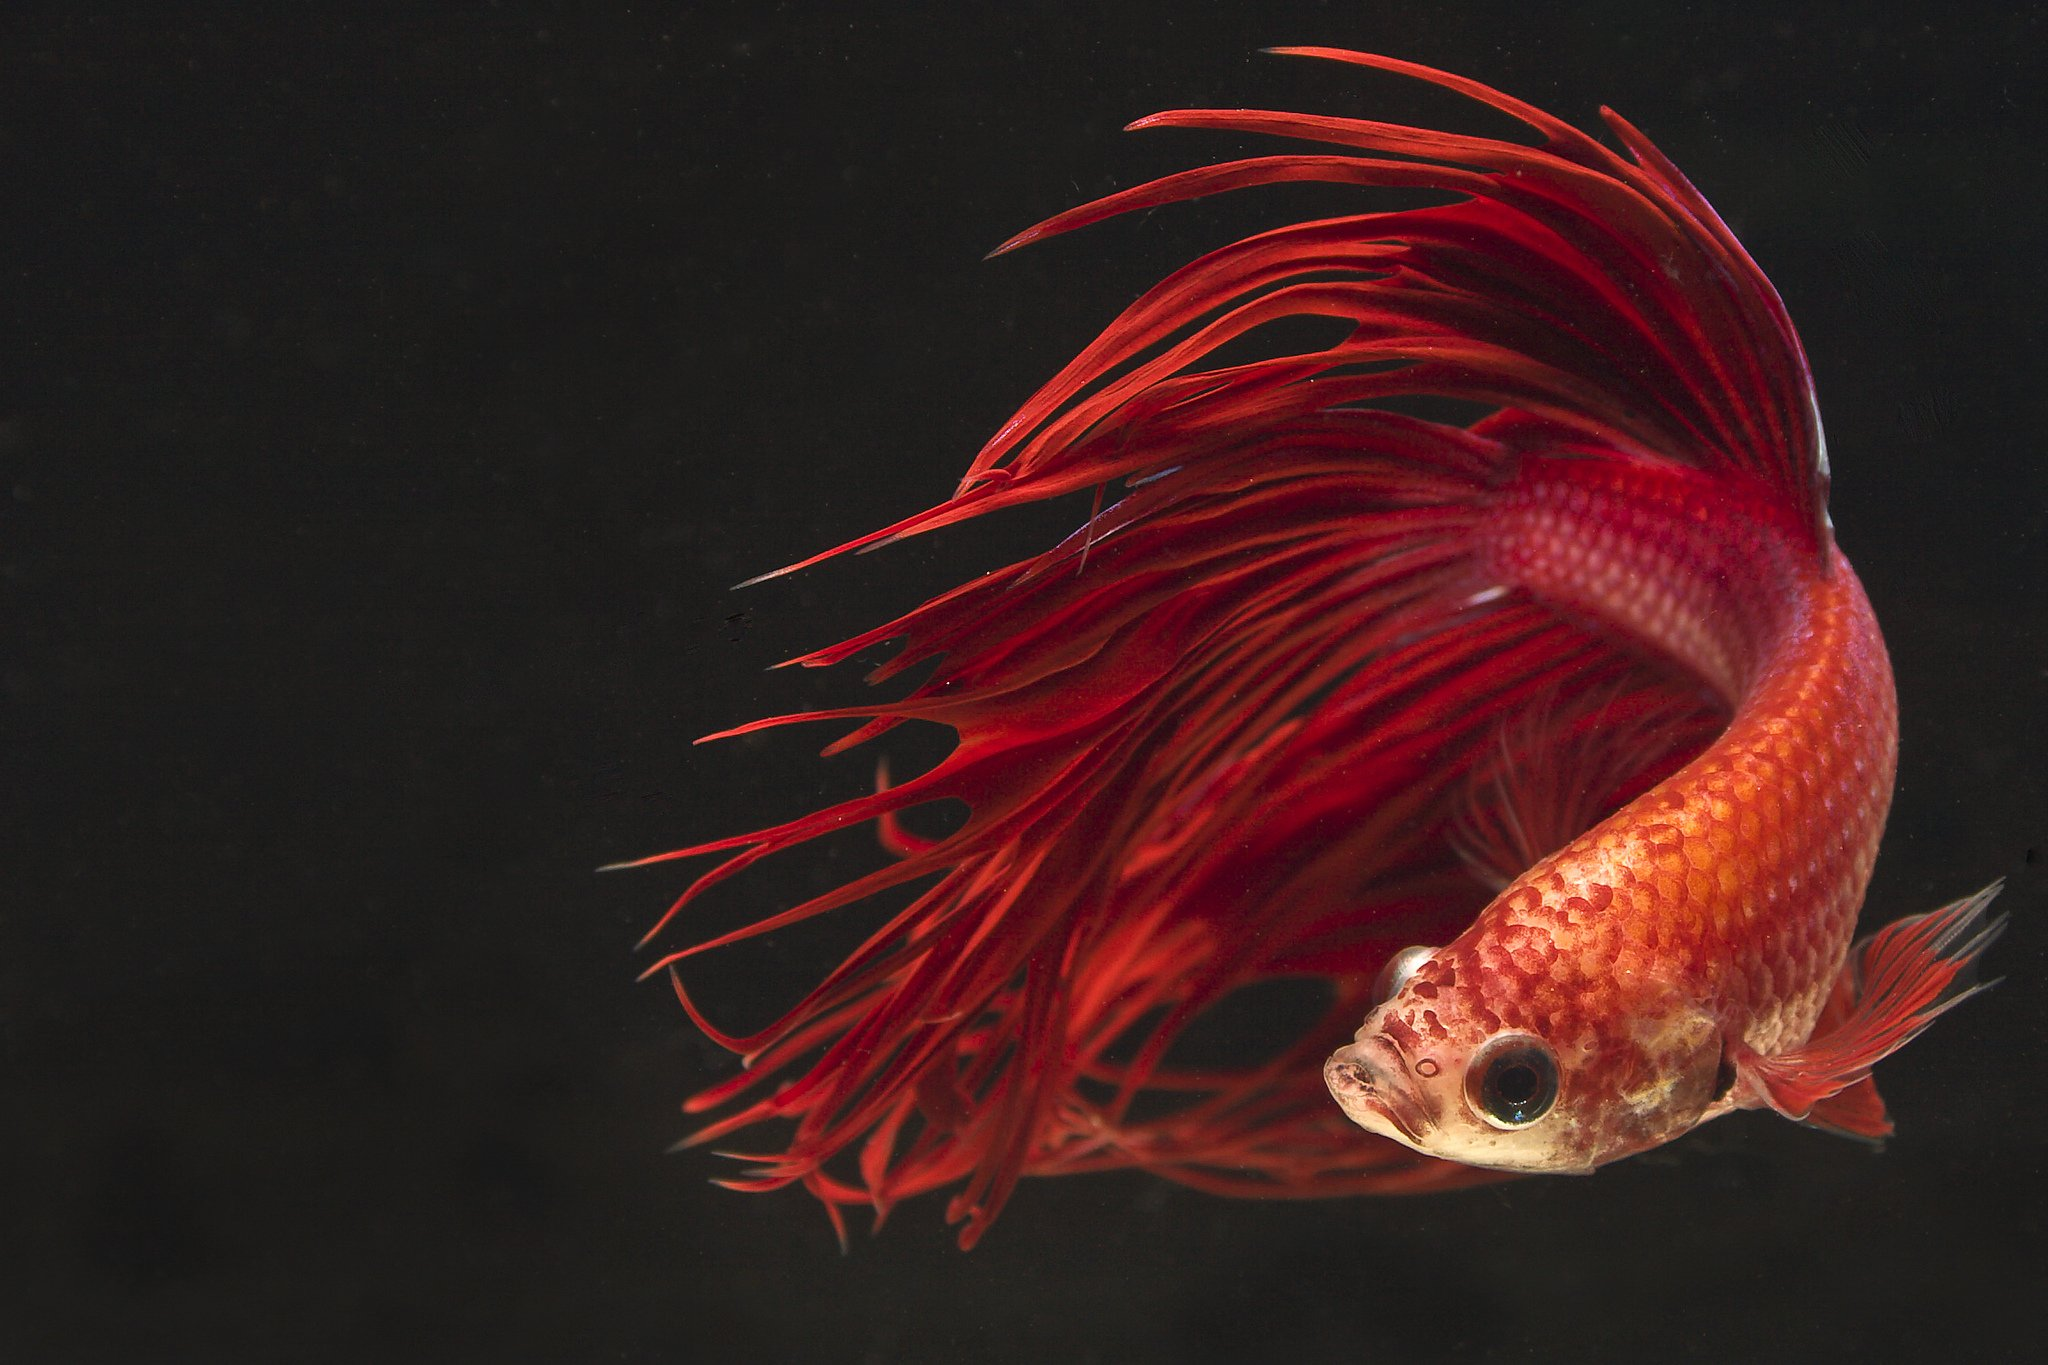 Fighter Fish Hd Wallpaper Download Betta Siamese Fighting Fish Colorful Tropical Wallpaper